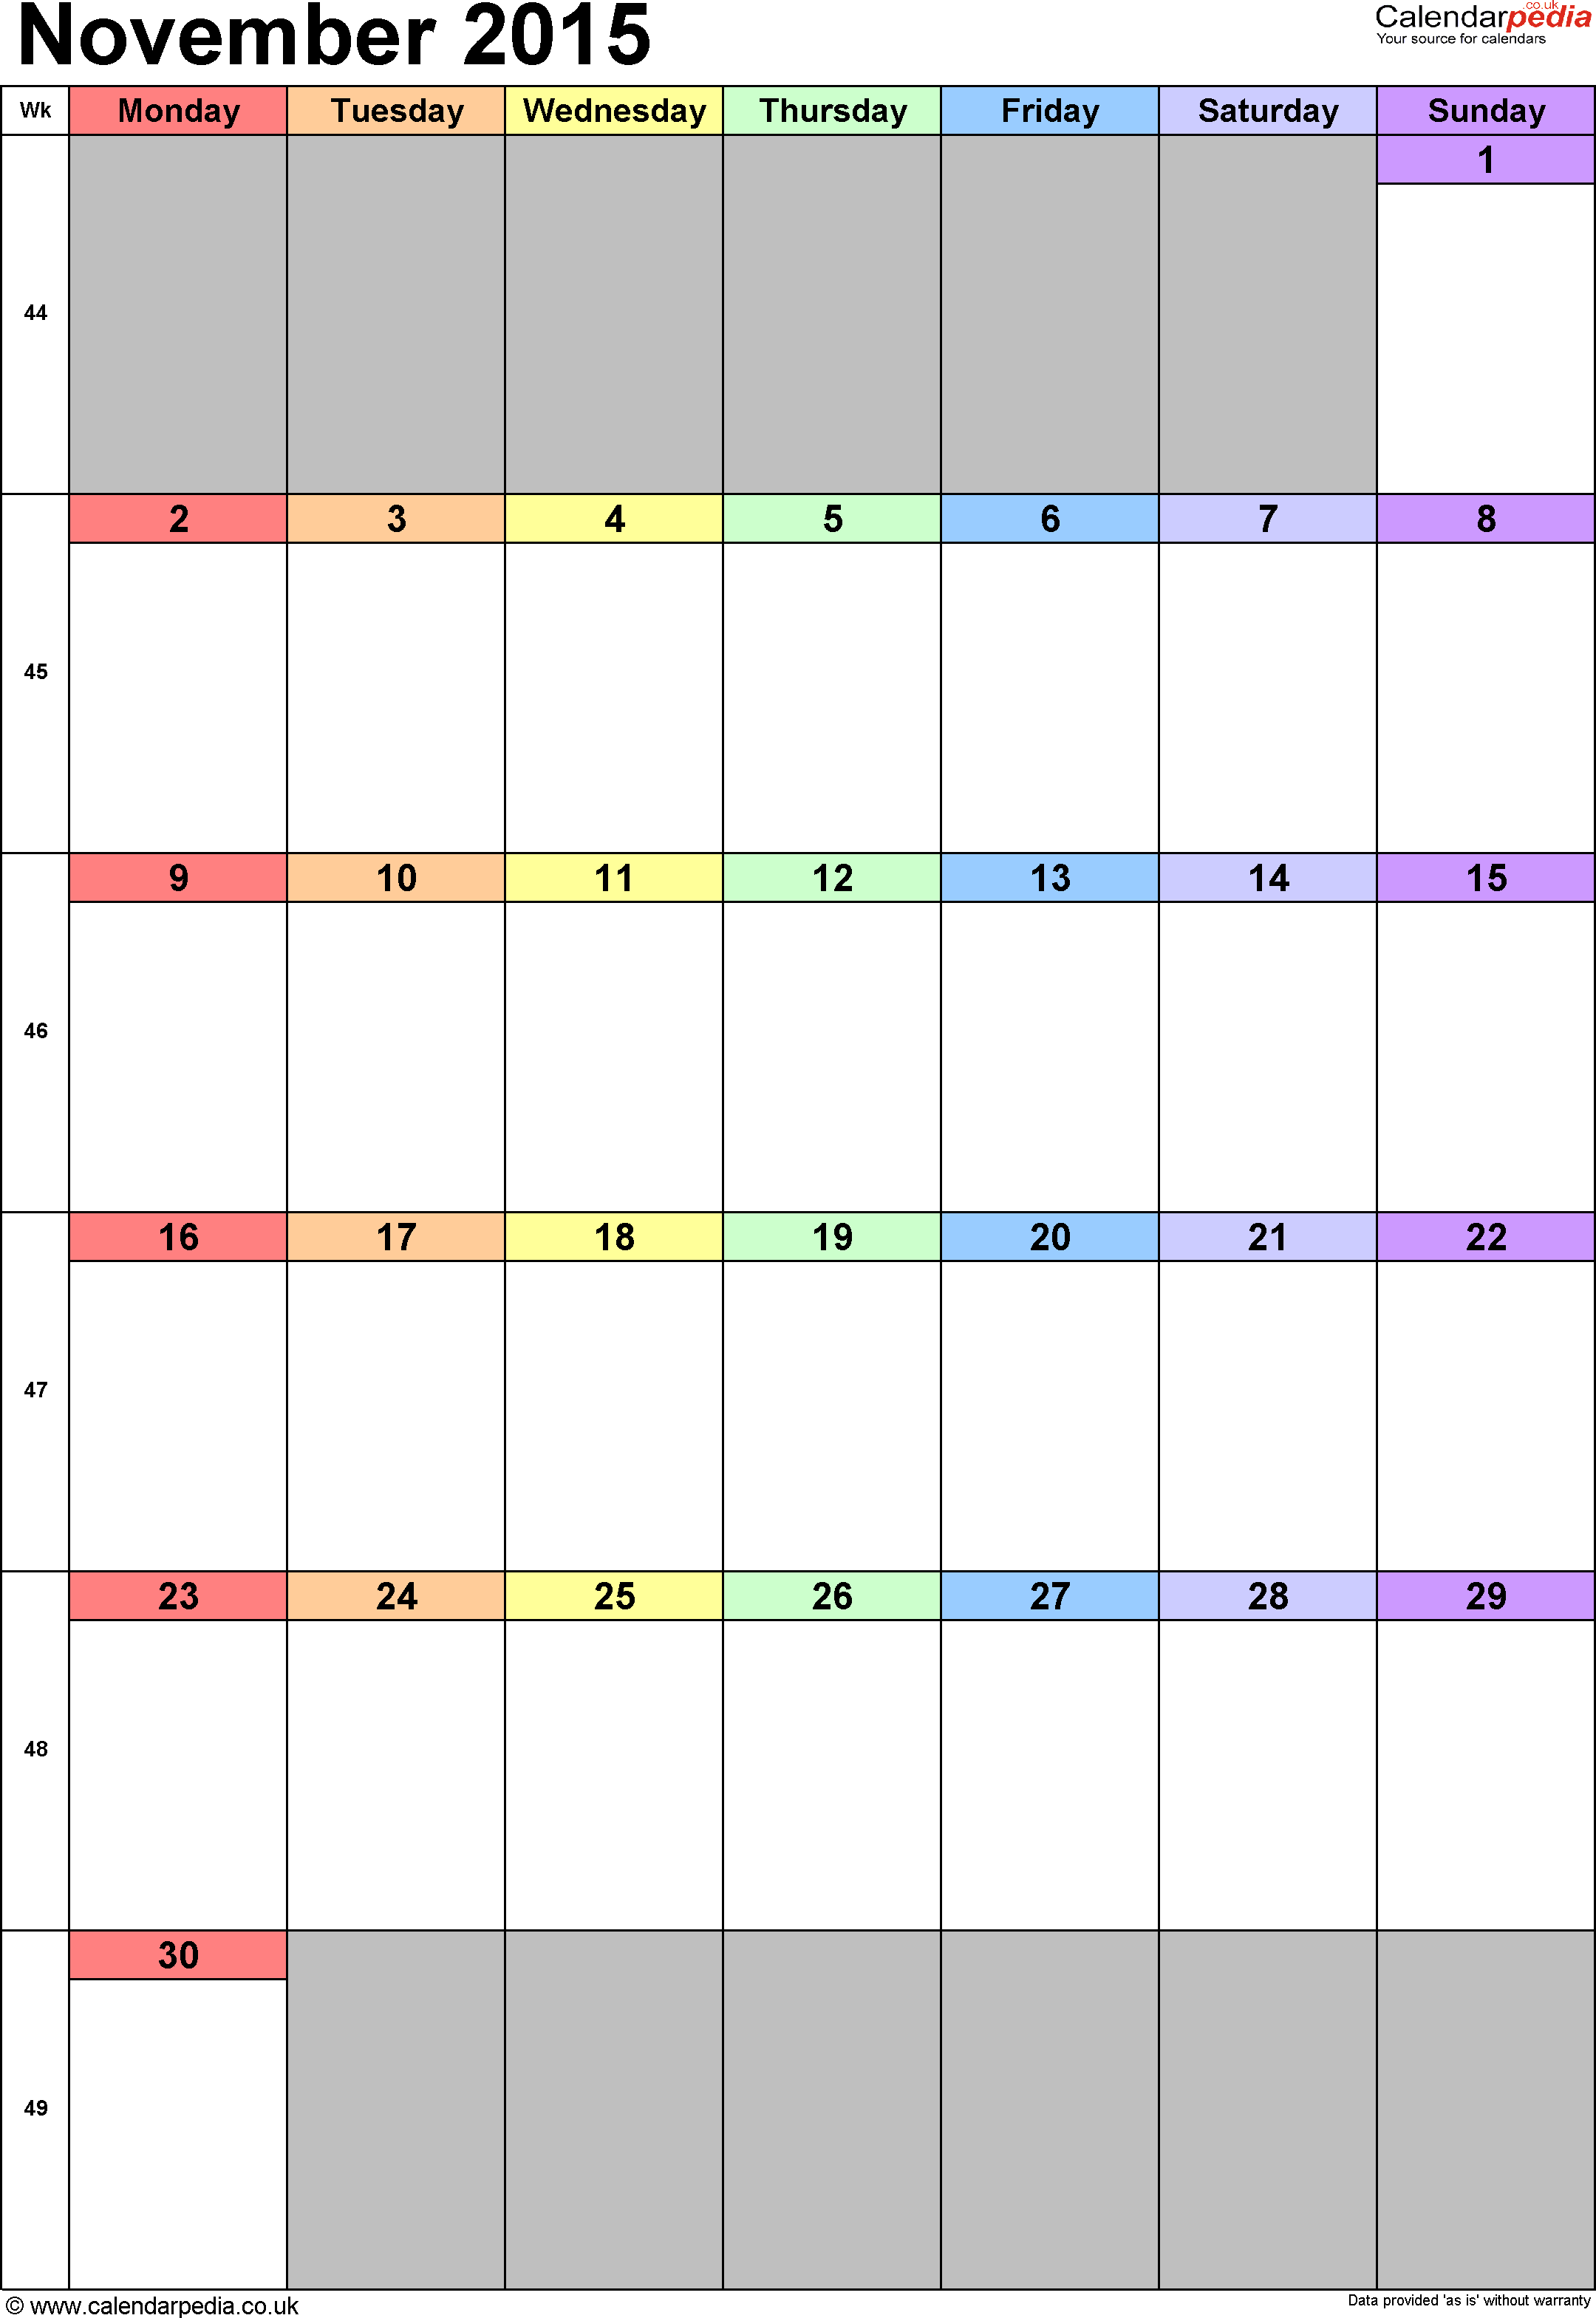 Calendar November 2015 portrait orientation, 1 page, with UK bank holidays and week numbers